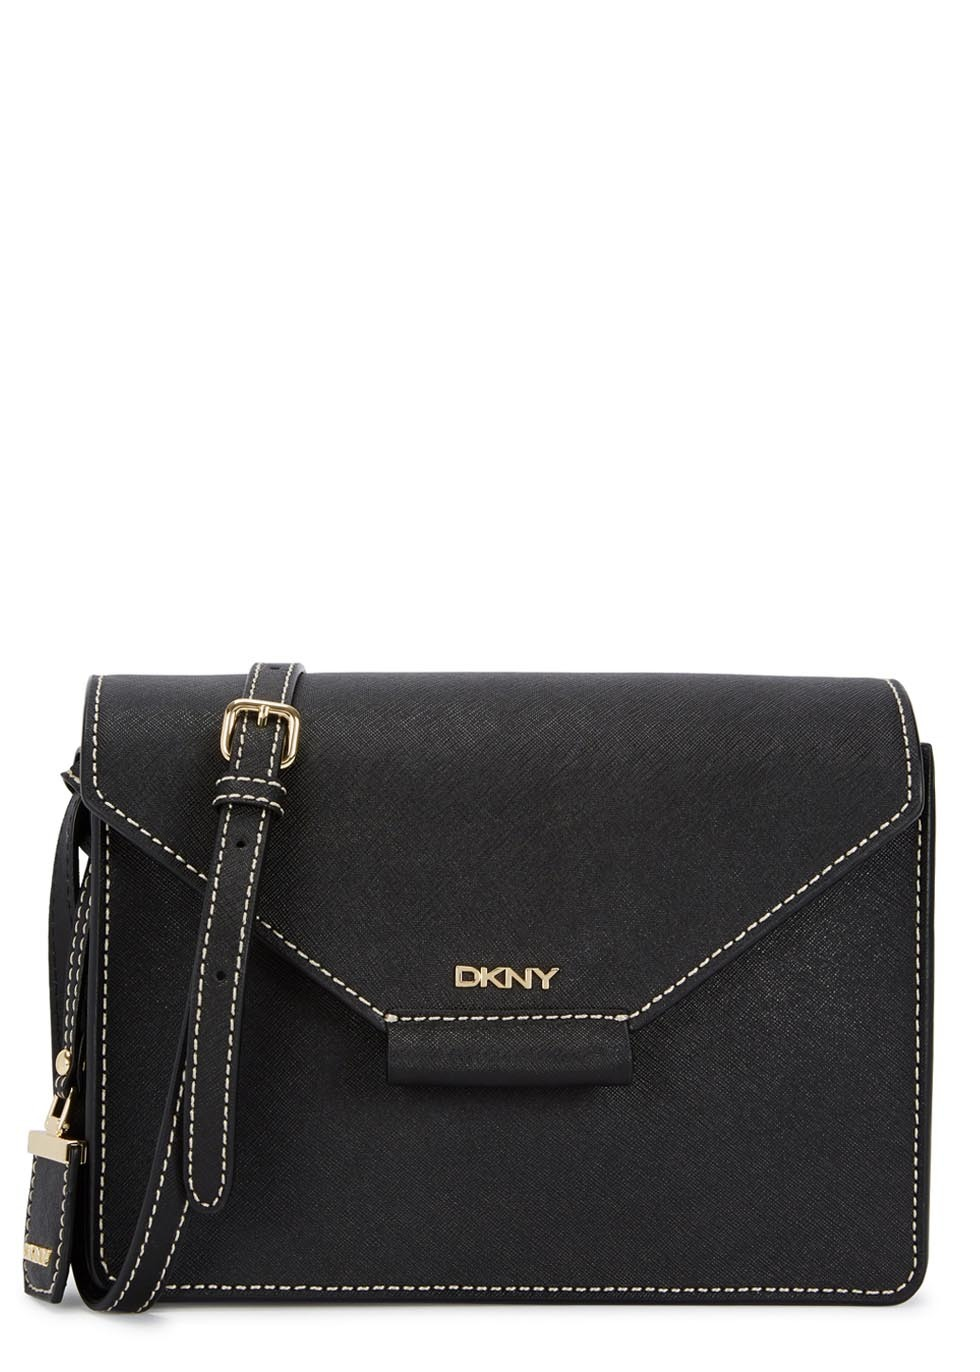 Bryant Park Black Saffiano Leather Cross Body Bag - predominant colour: black; occasions: casual; style: messenger; length: across body/long; size: standard; material: leather; pattern: plain; finish: plain; season: a/w 2015; wardrobe: basic